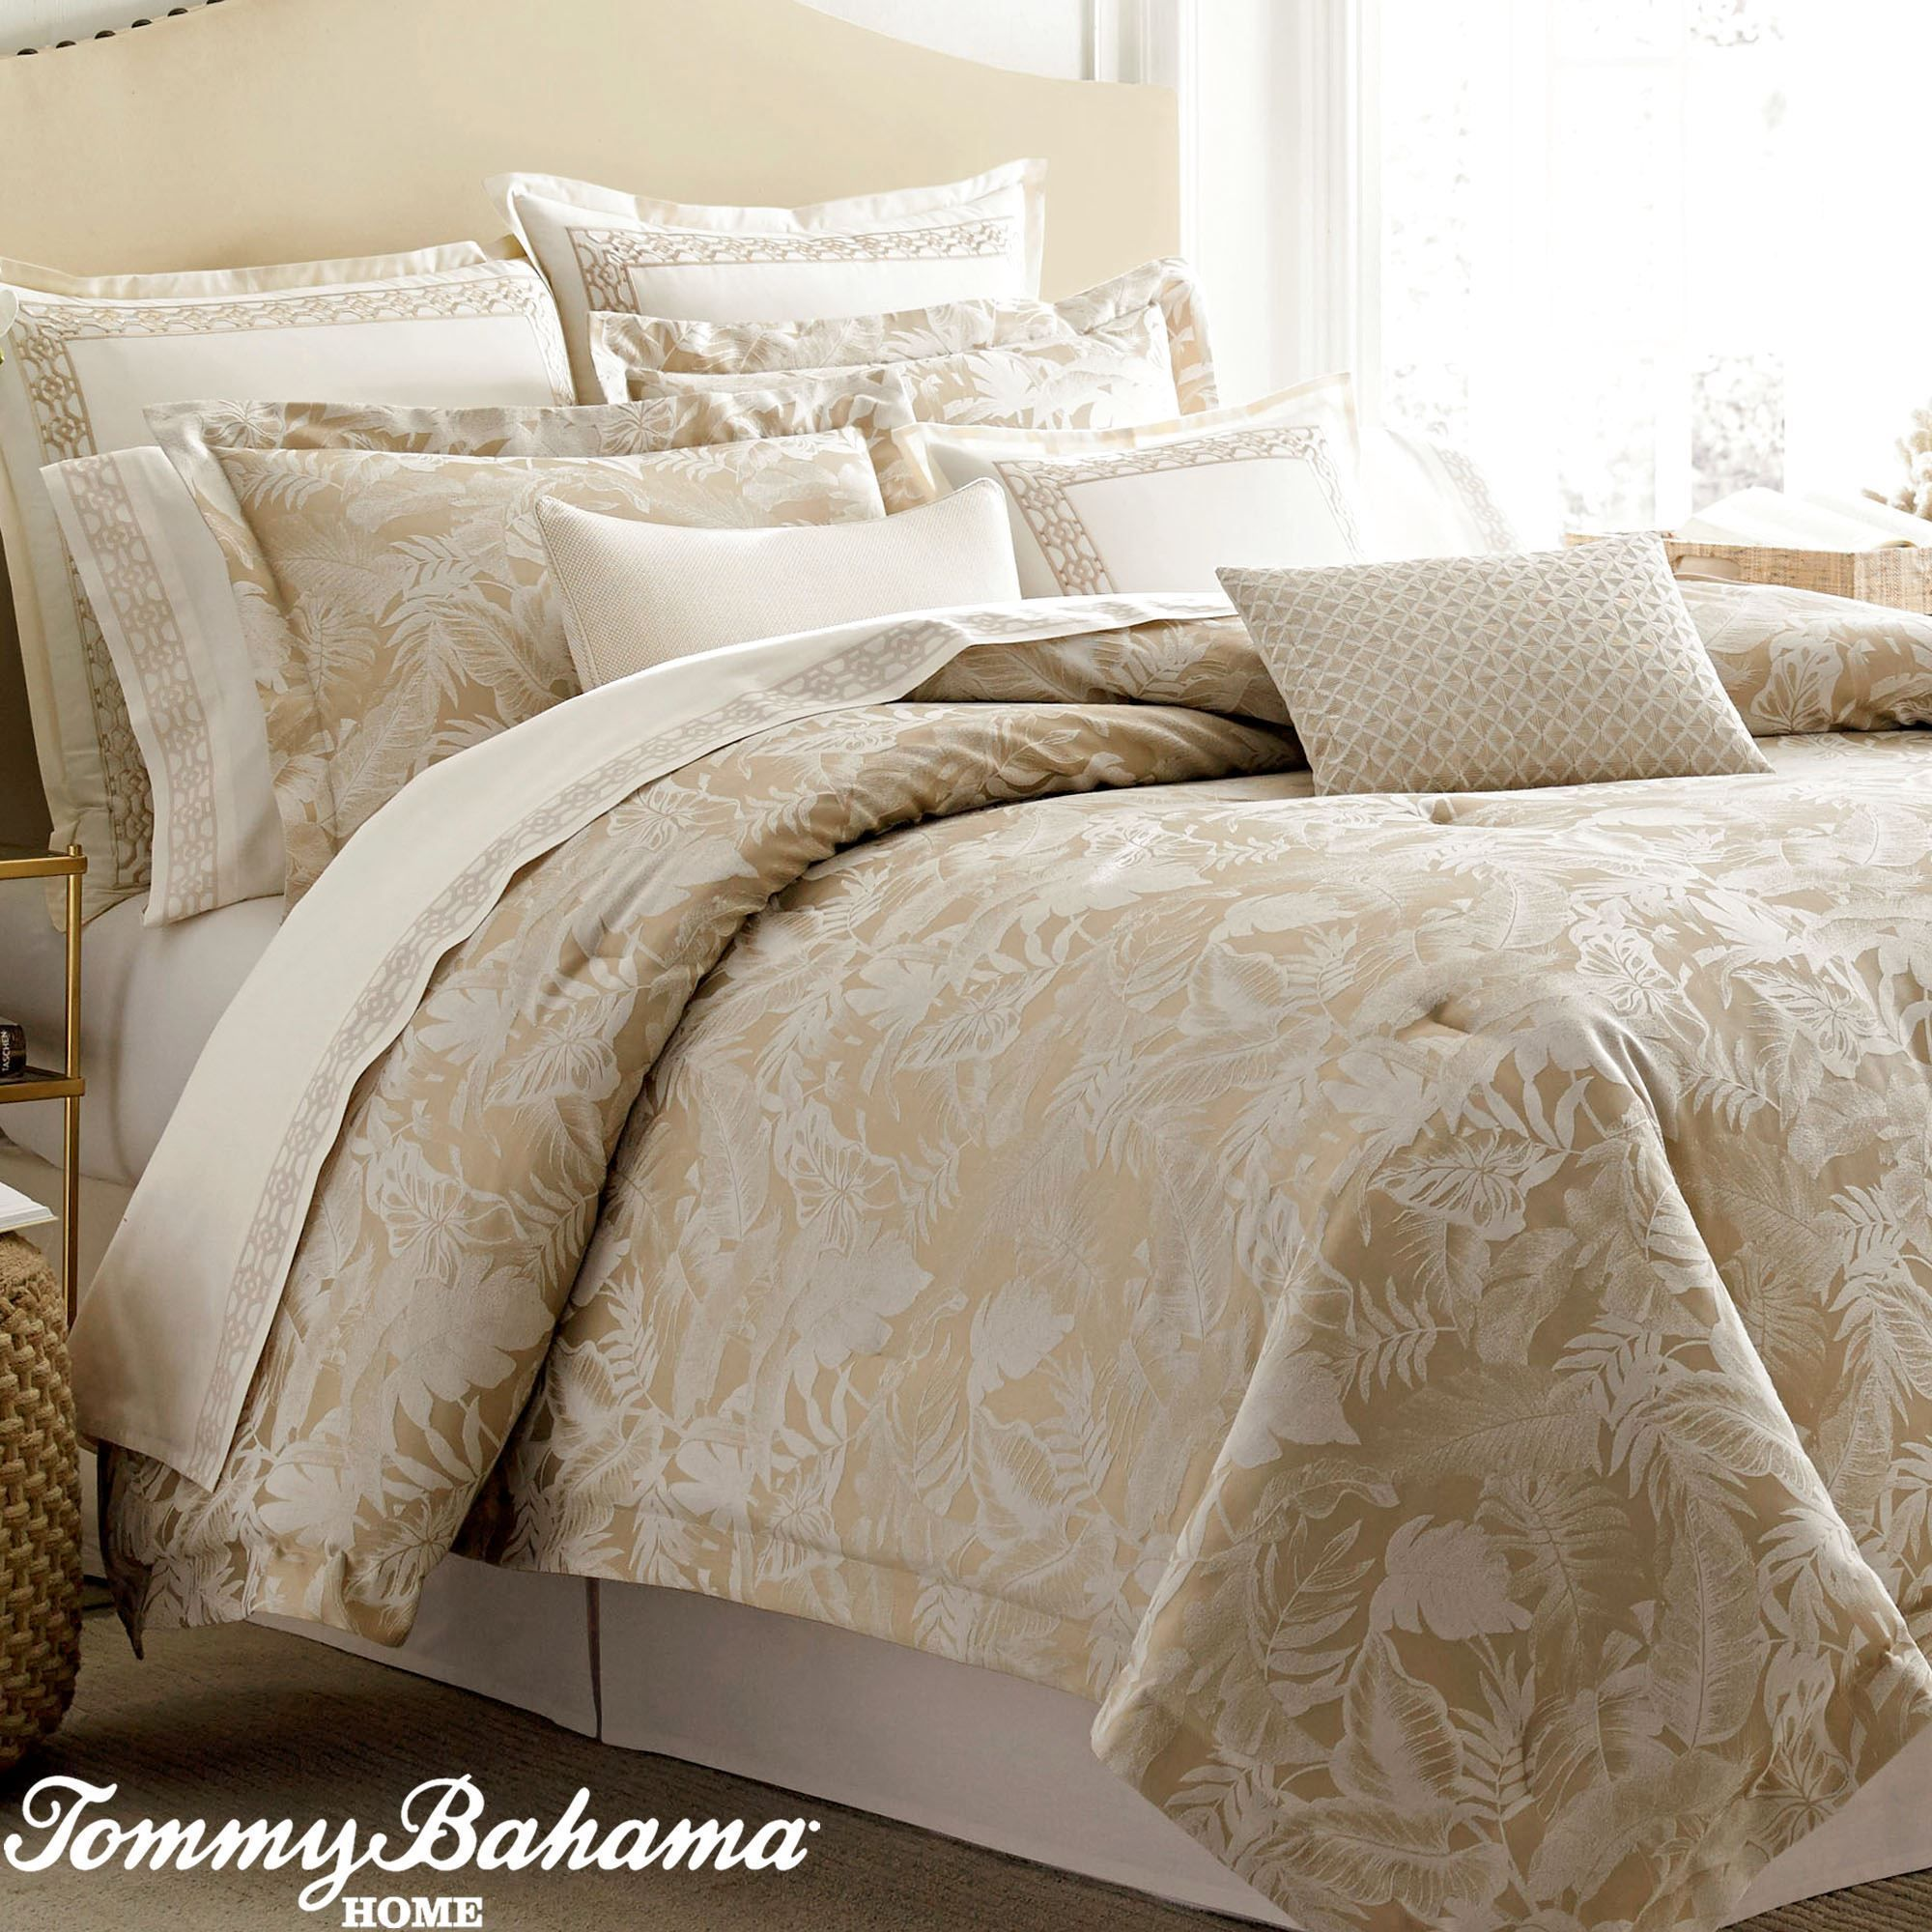 Mangrove Tropical Comforter Bedding By Tommy Bahama Gold Setking